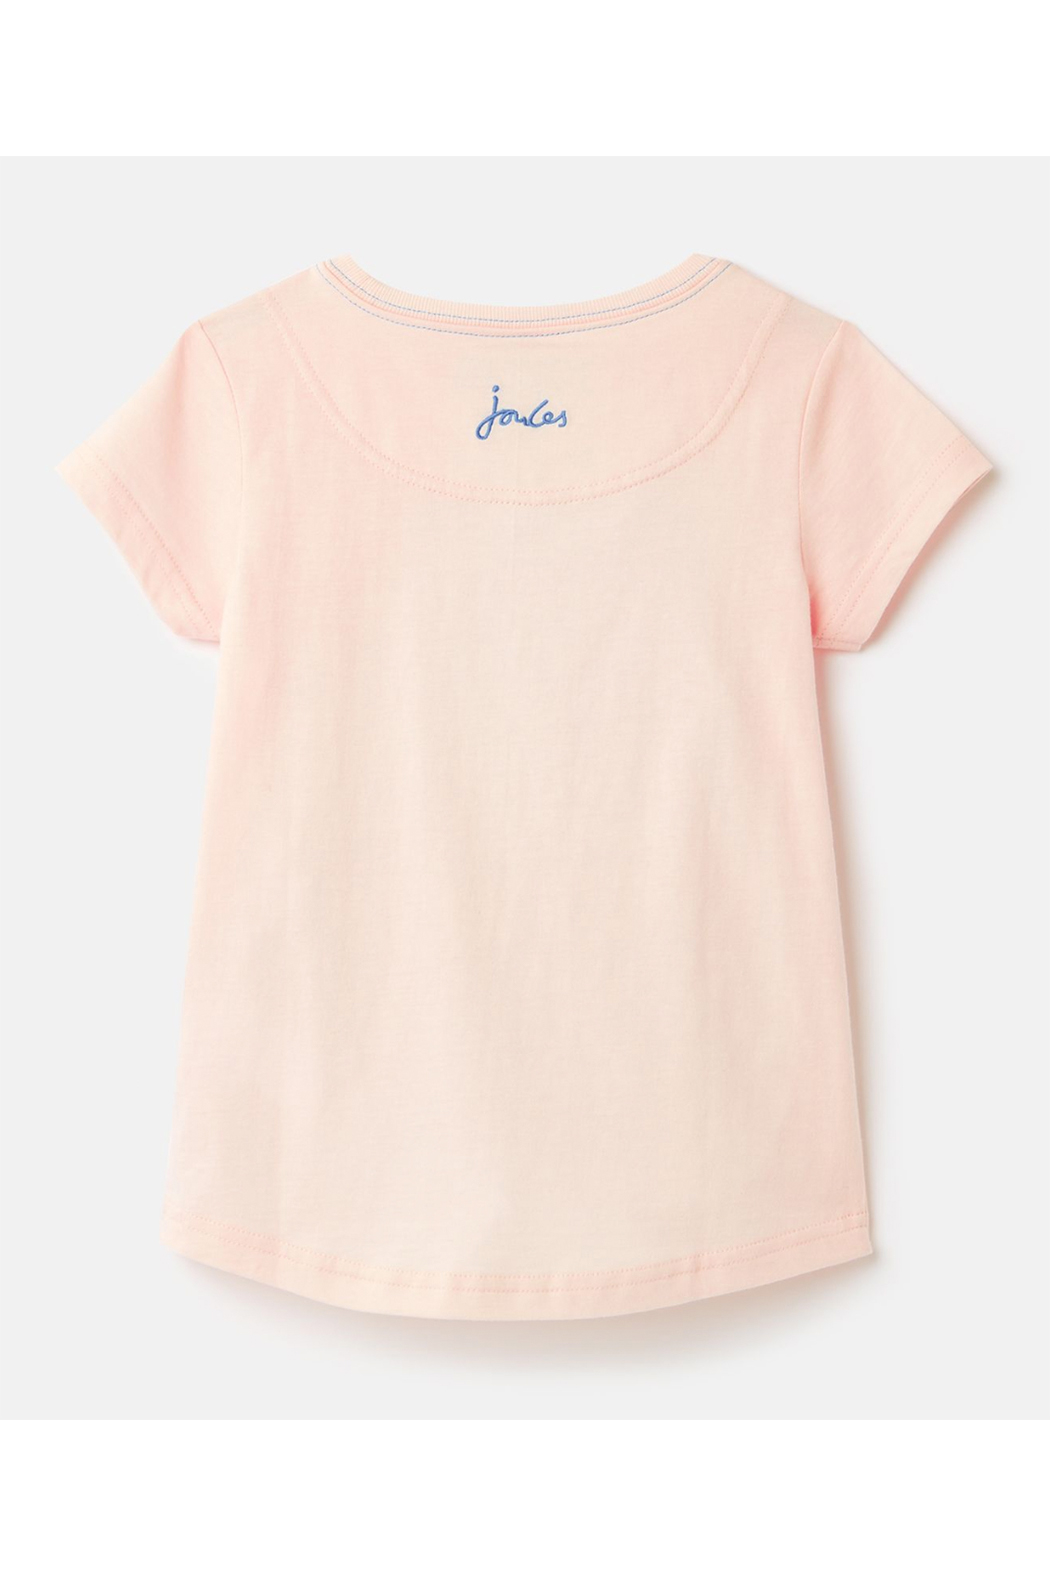 Joules Astra Applique T-Shirt 3-12 Years - Front Full Image